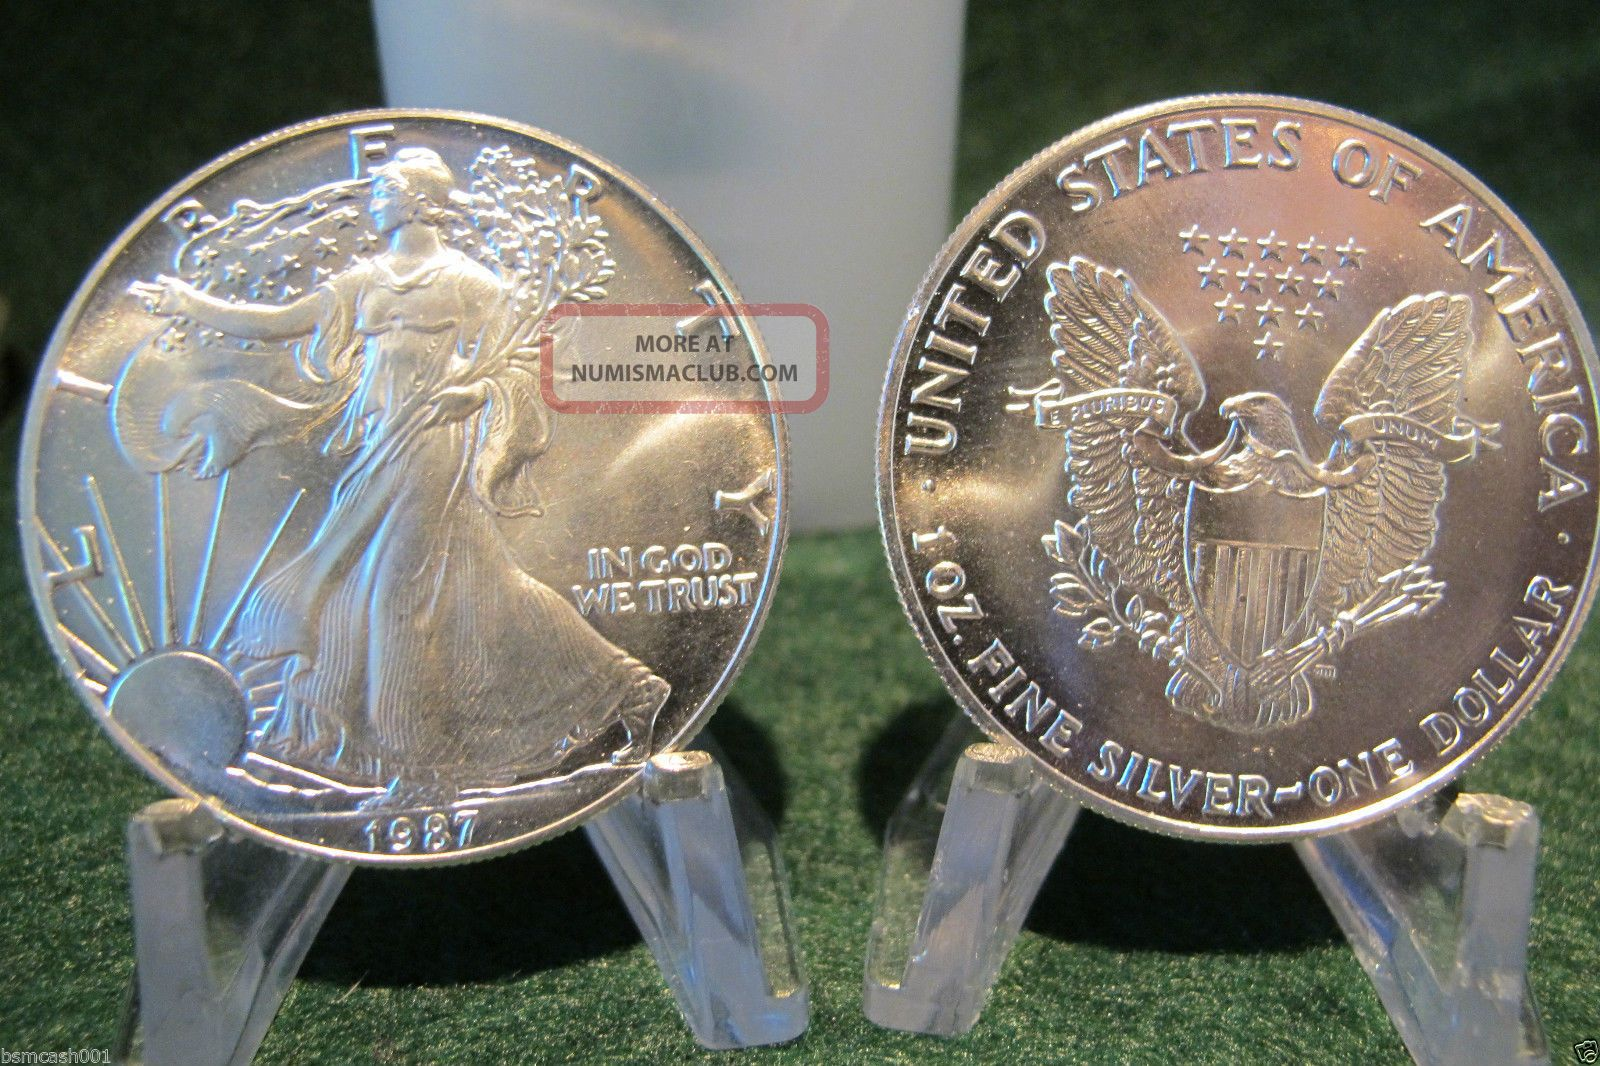 1987 American Silver Eagles Silver Coin One Troy Ounce